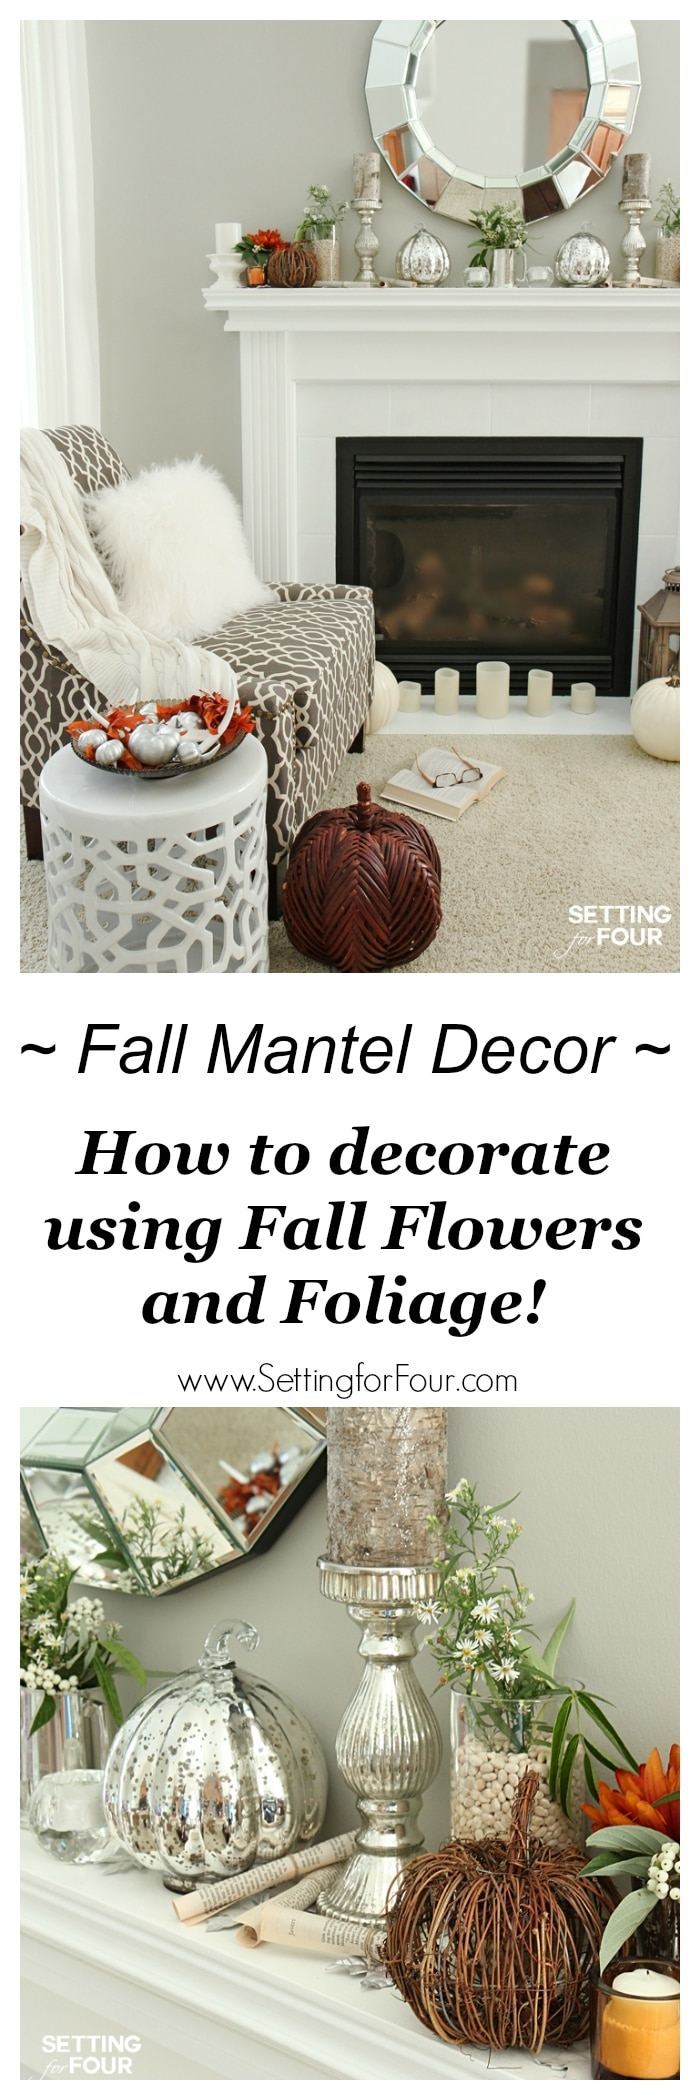 How to decorate with natural elements. Love this look? See my Fall mantel decor ideas using fall flowers and foliage here! Bring fall into your home! www.settingforfour.com